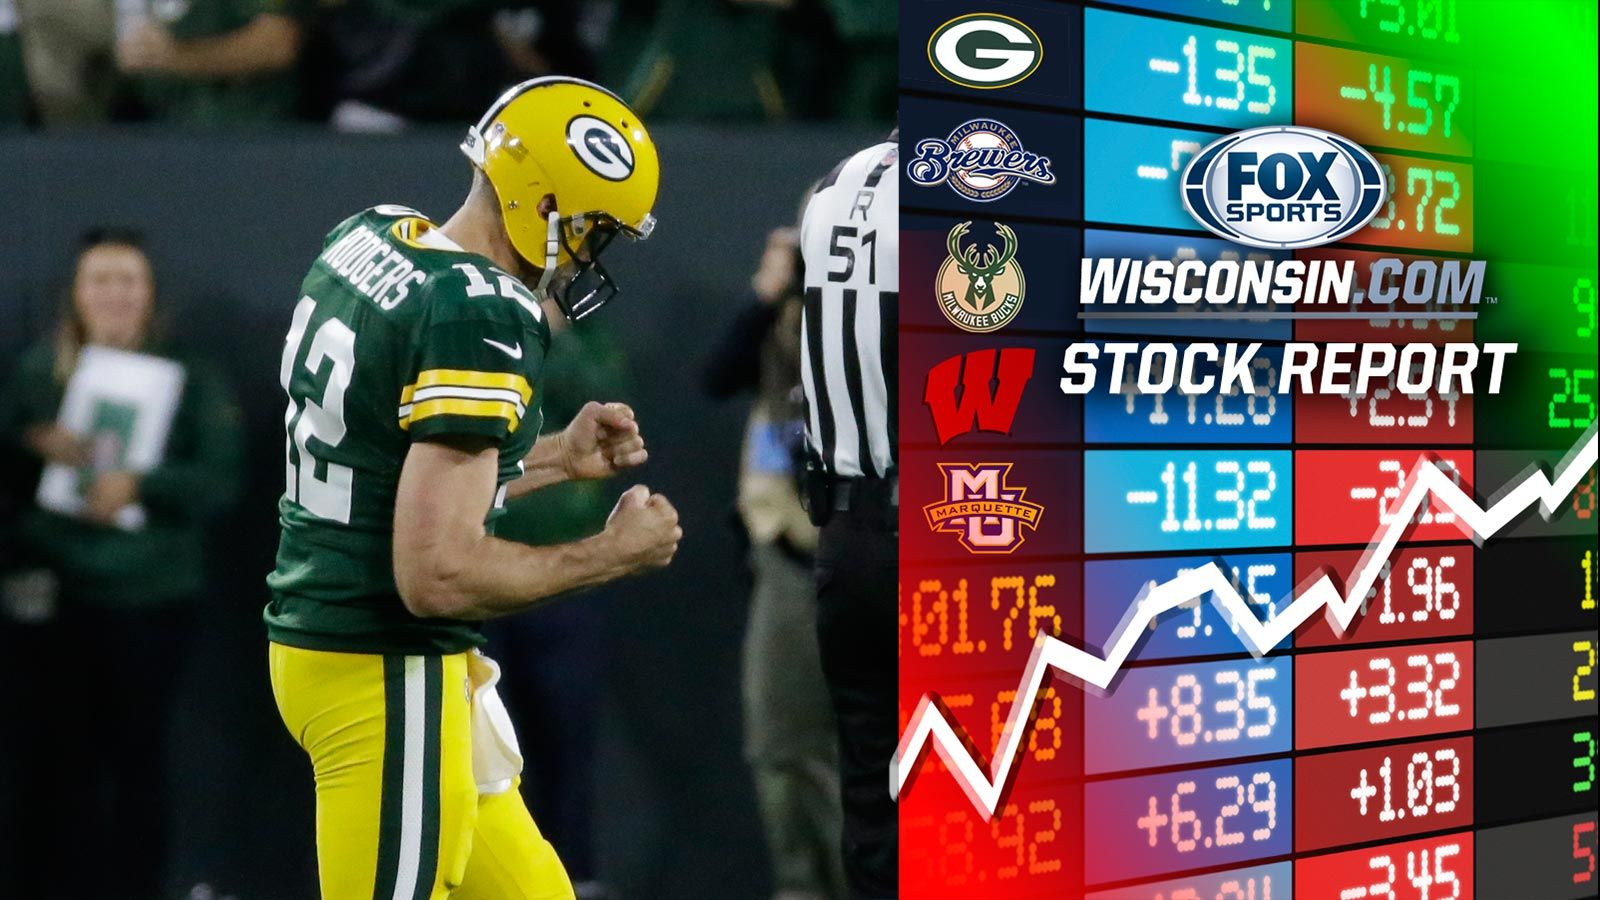 pi-wi-stock-rodgers-packers-091218